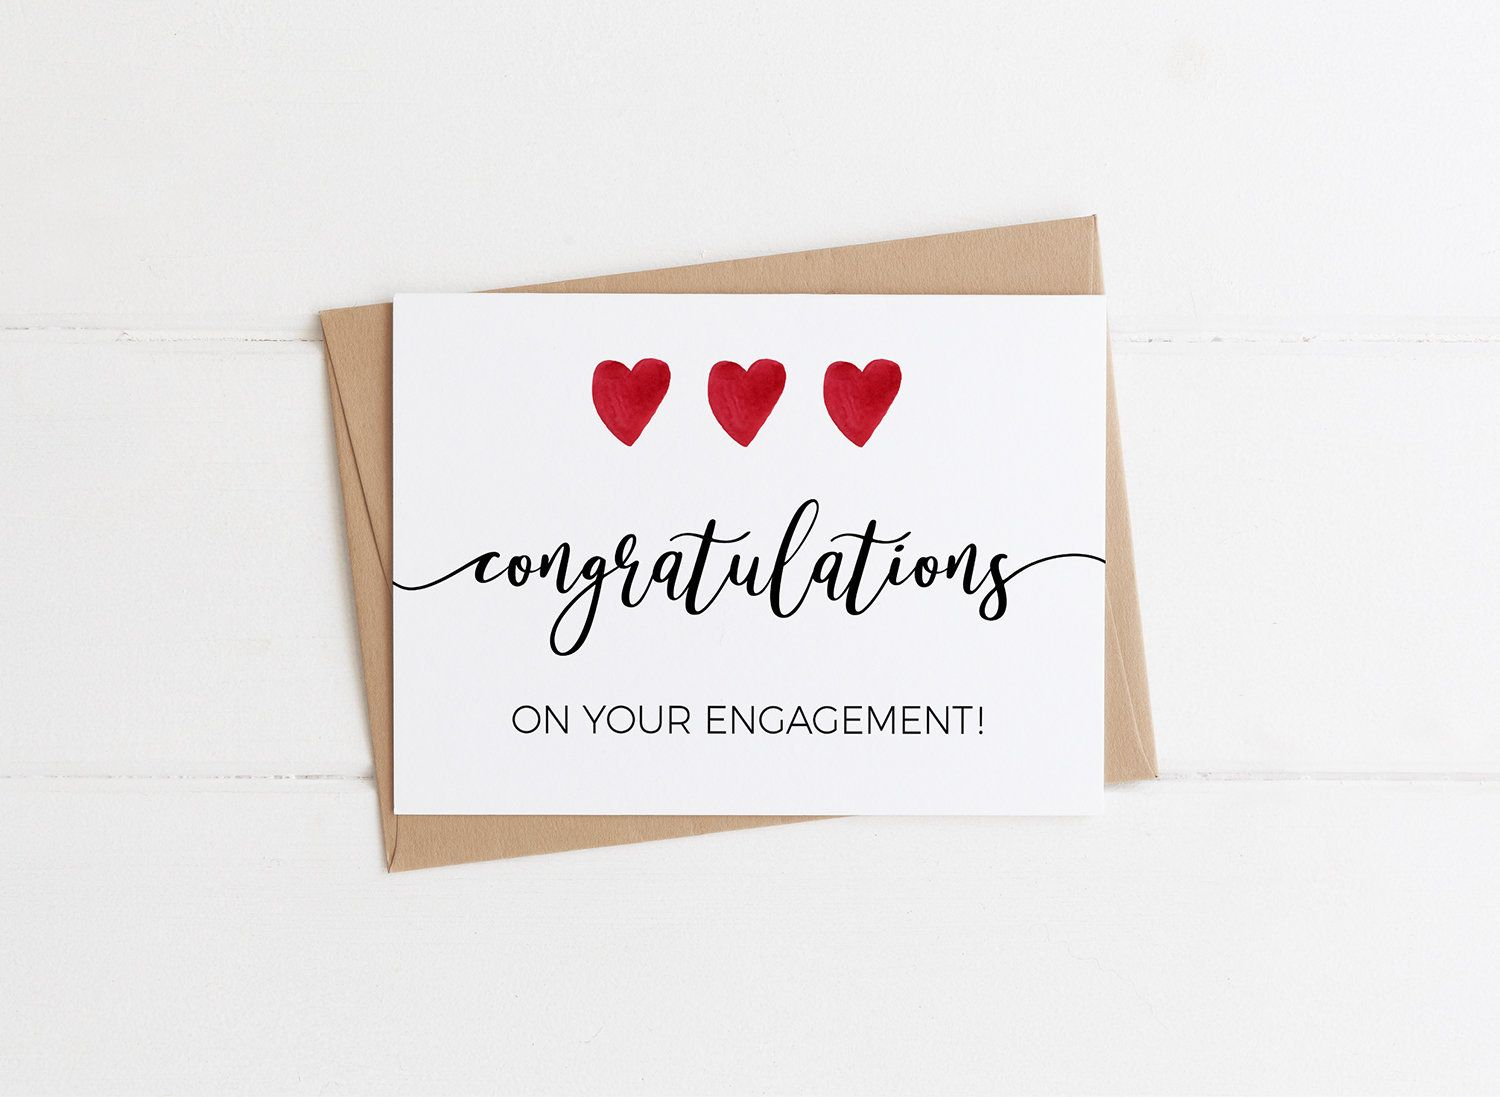 Congratulations On Your Engagement Elegant Engagement Card Congrats On Your Engagement Eng Engagement Cards Congrats On Your Engagement Engagement Greetings